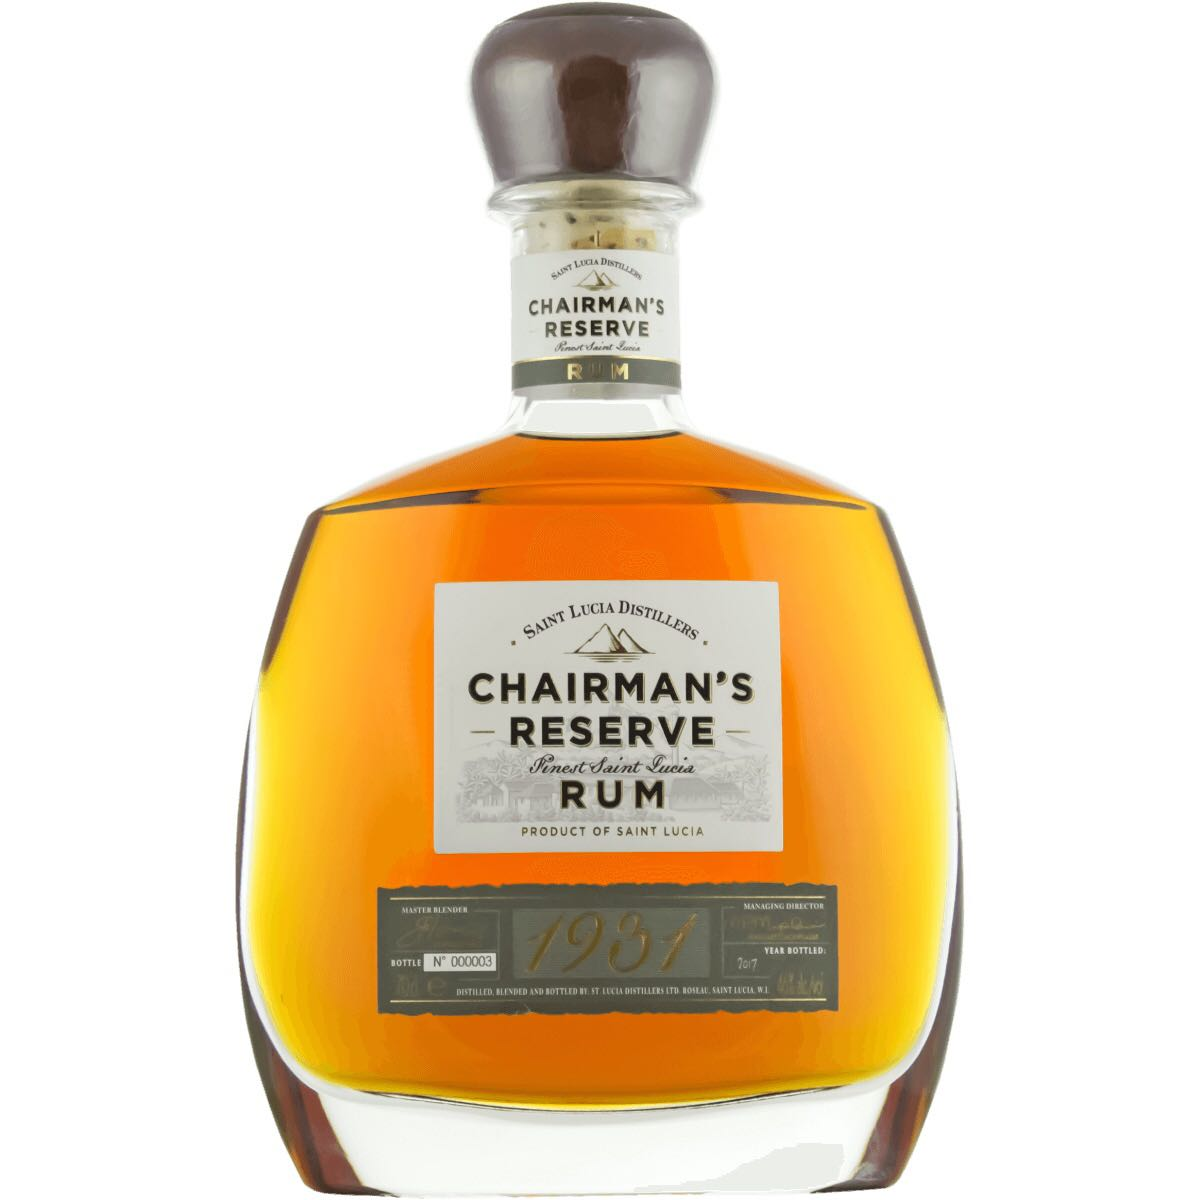 Bottle image of Chairman's Reserve 1931